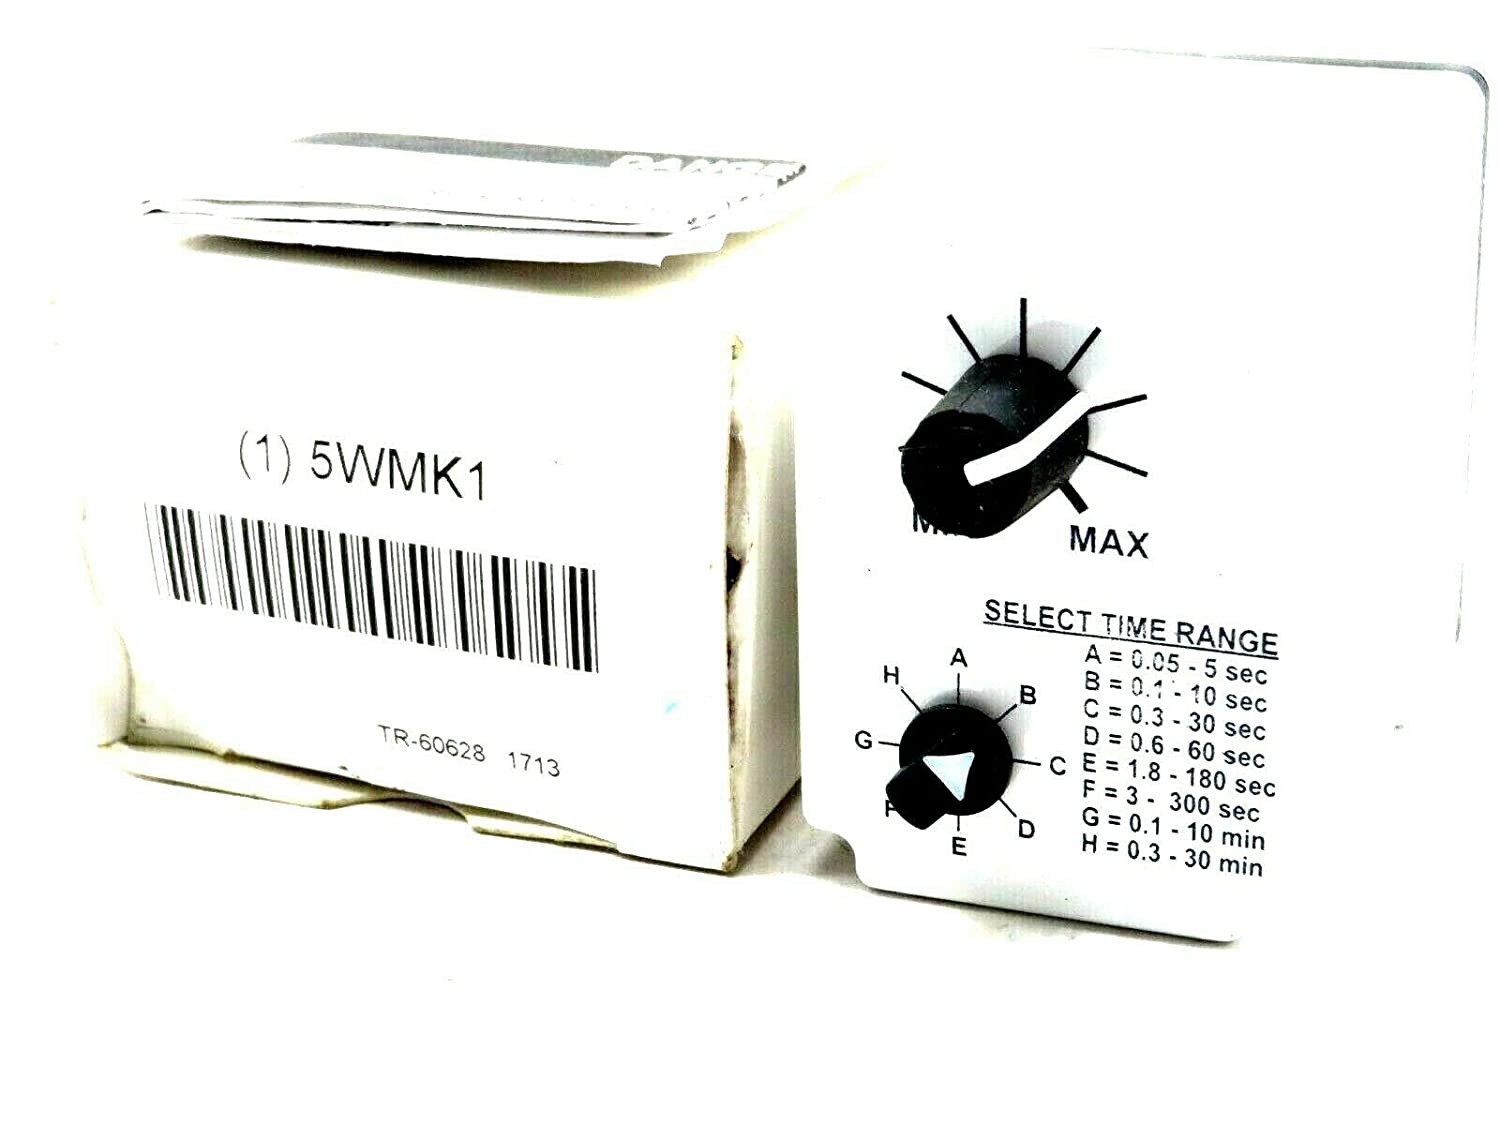 TR-60628 MACROMATIC Time Delay Relay,24VAC//DC,10A,DPDT